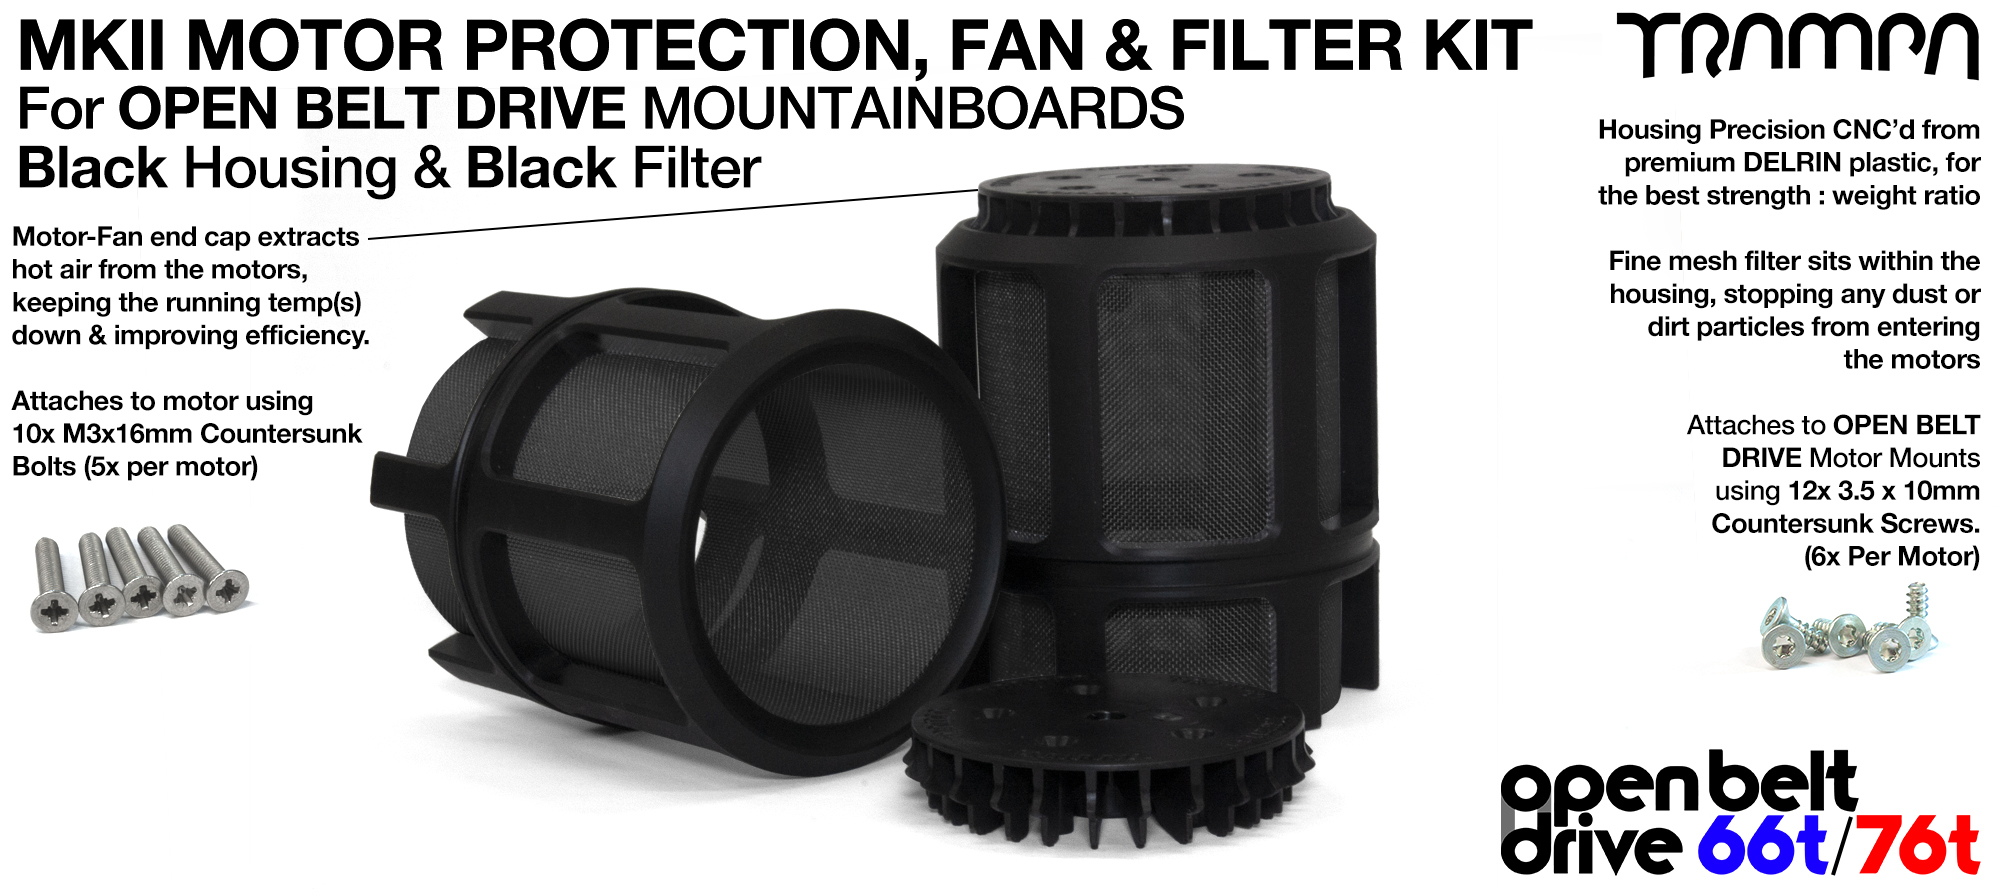 BLACK Mesh Filter in Motor Protection Cage with Fan (+£60)